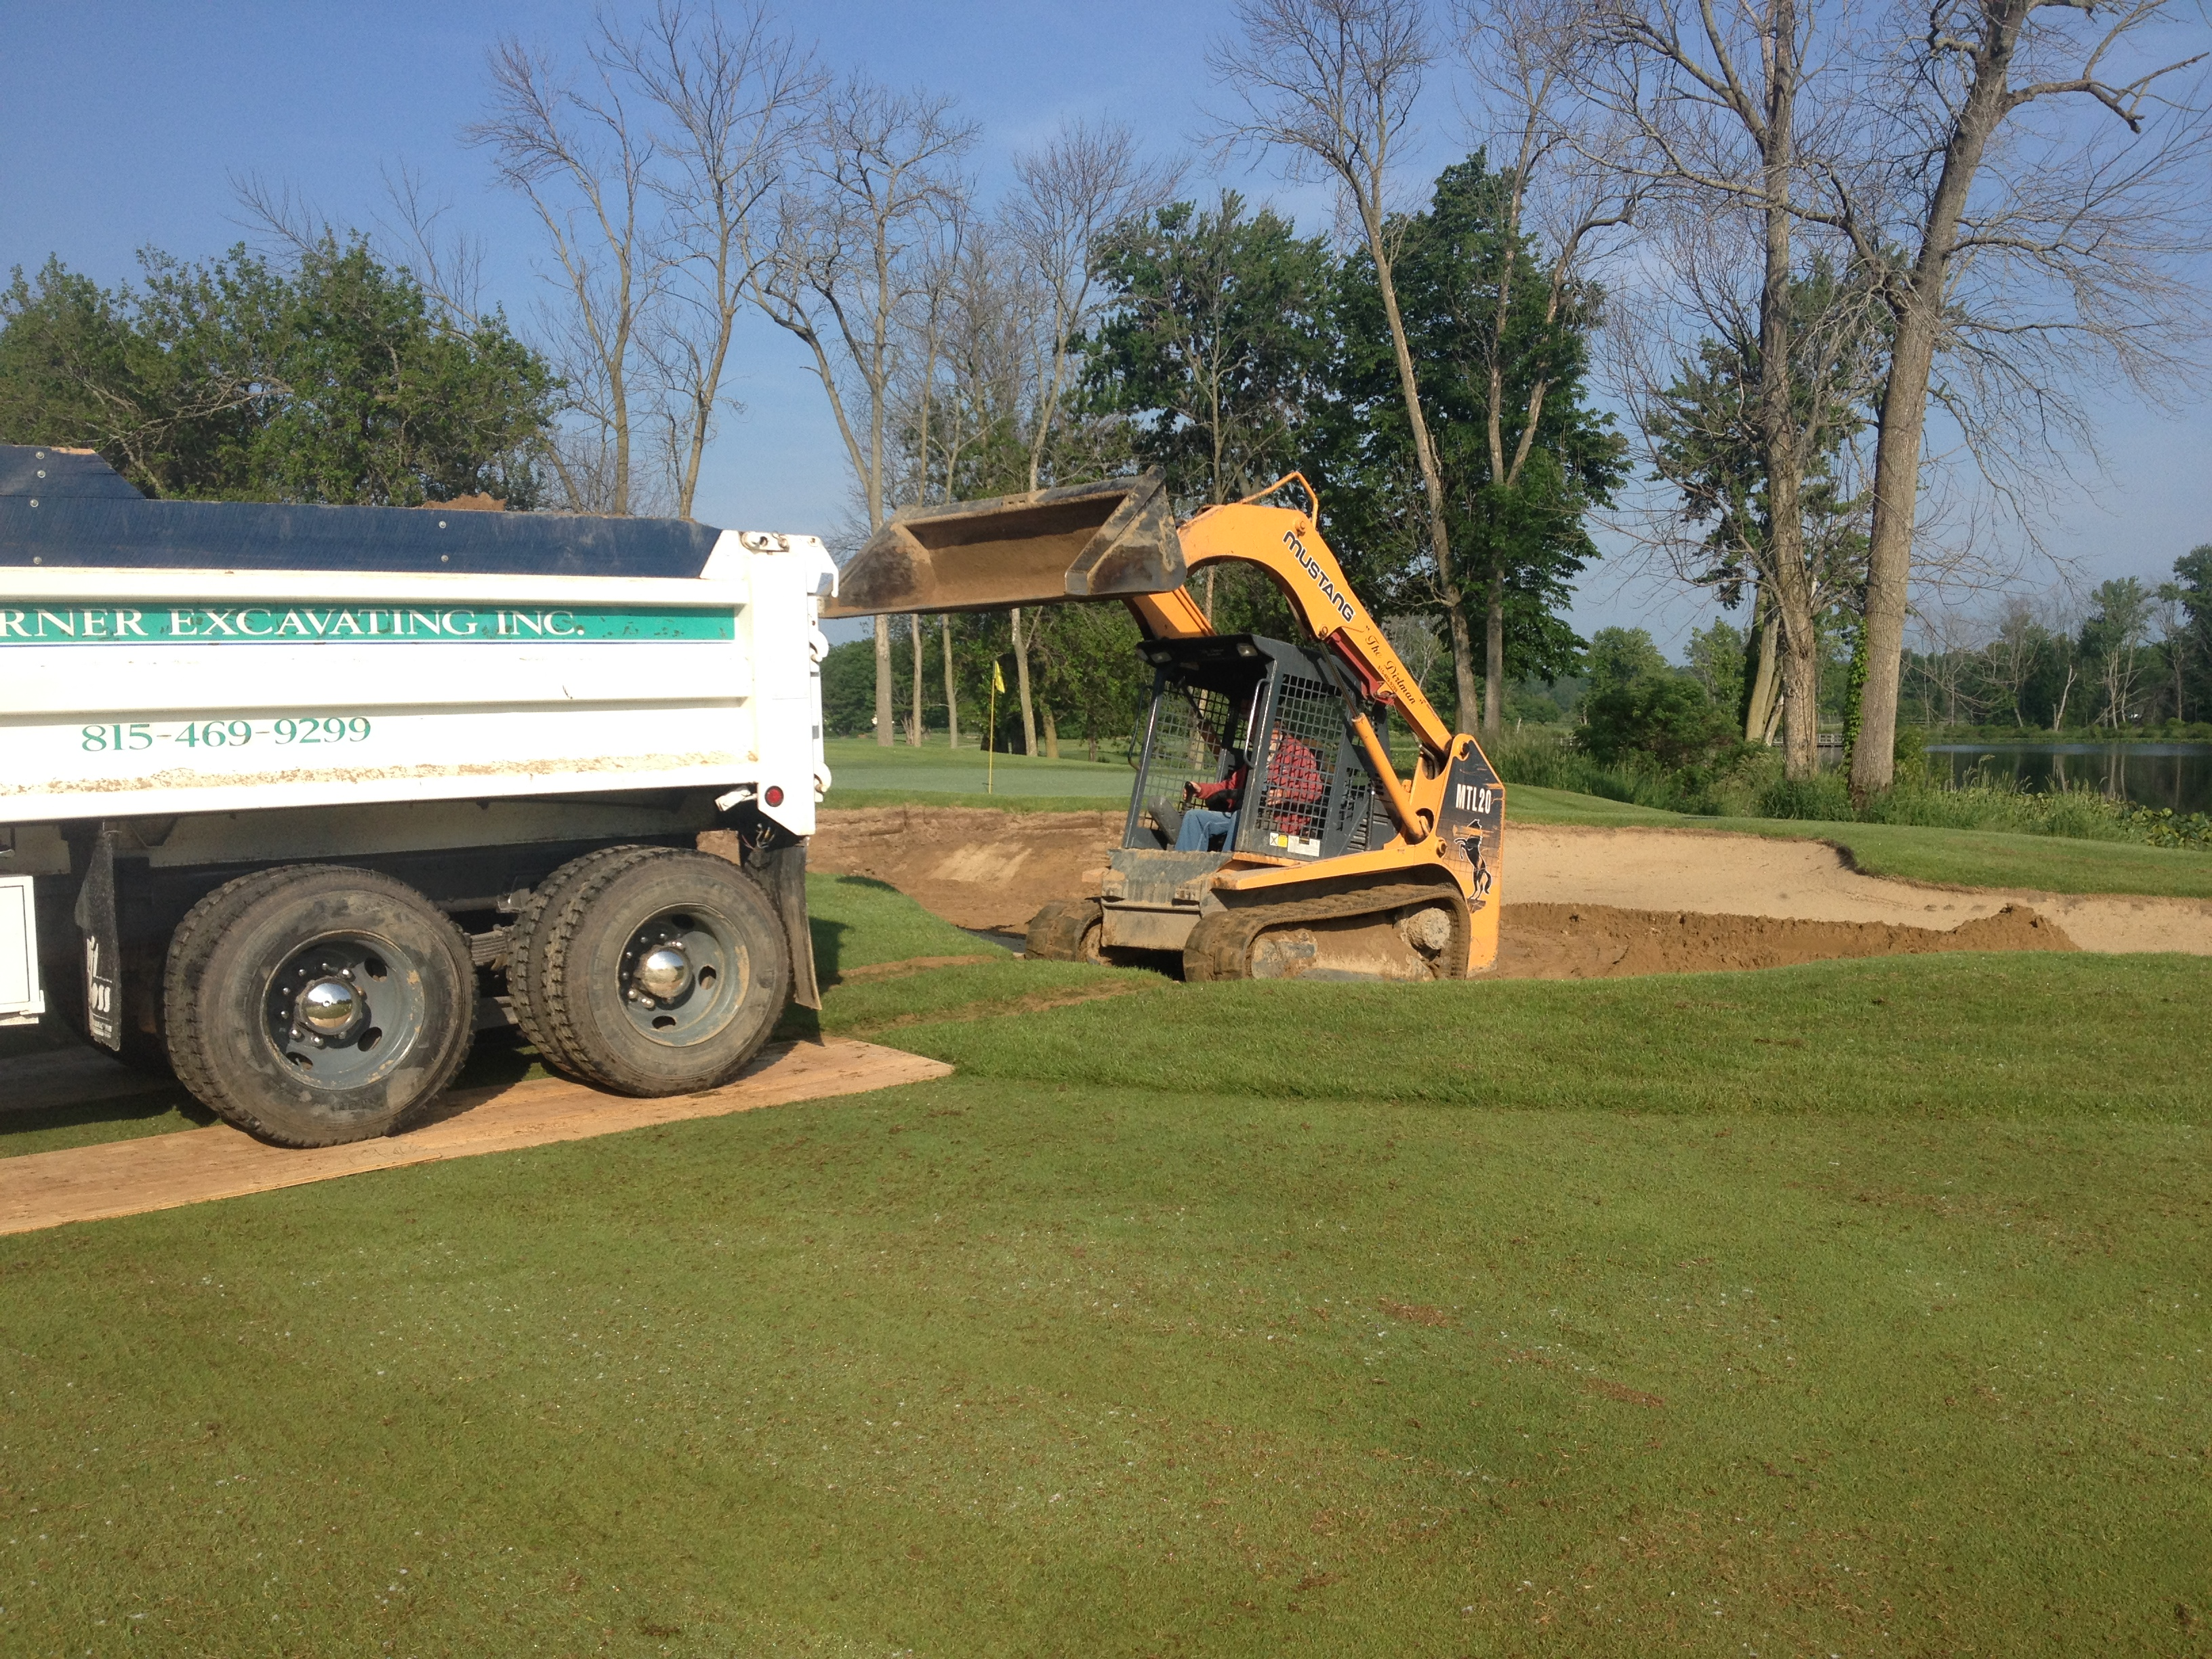 Golf course sand bunkers